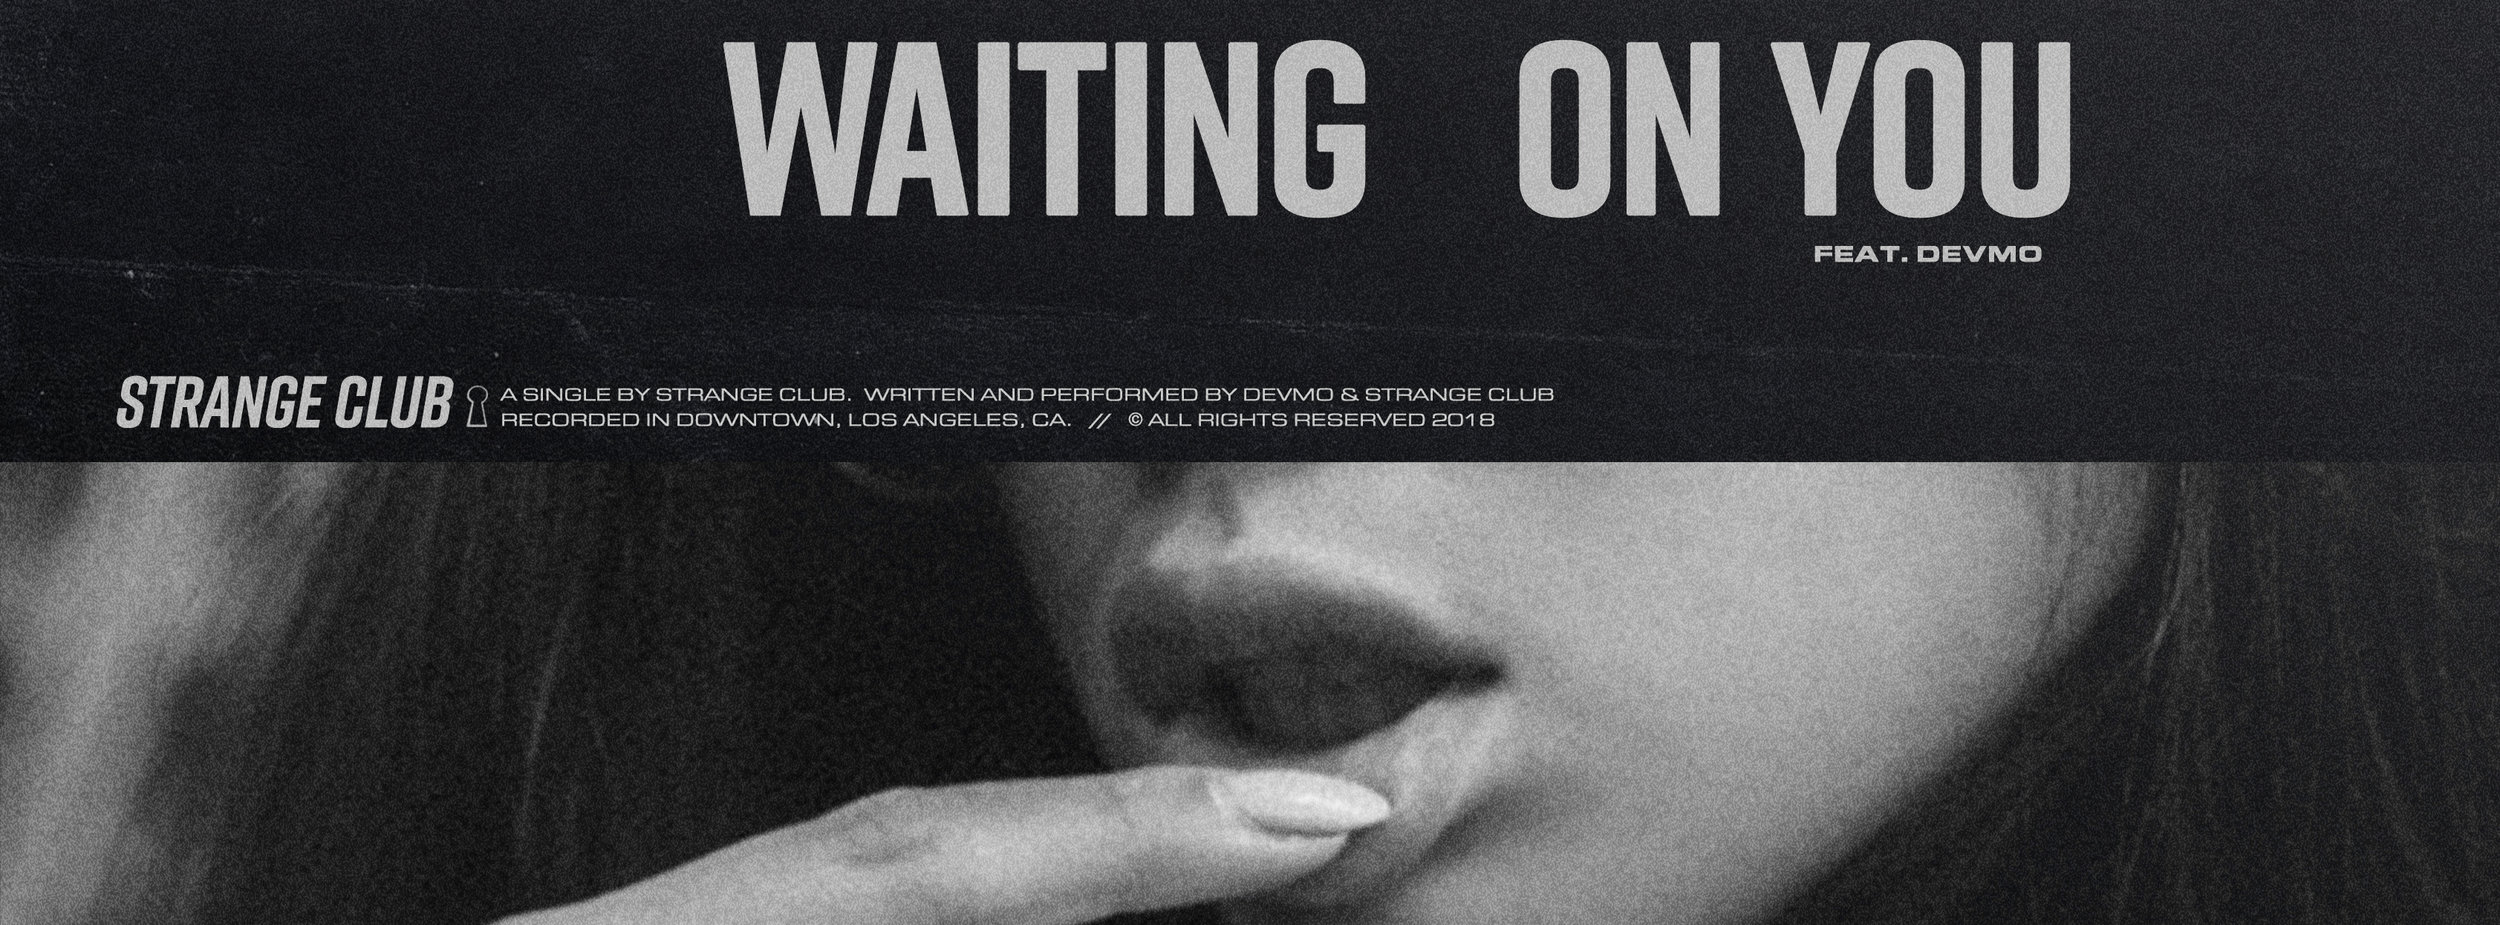 Waiting_On_You-FBCover.jpg